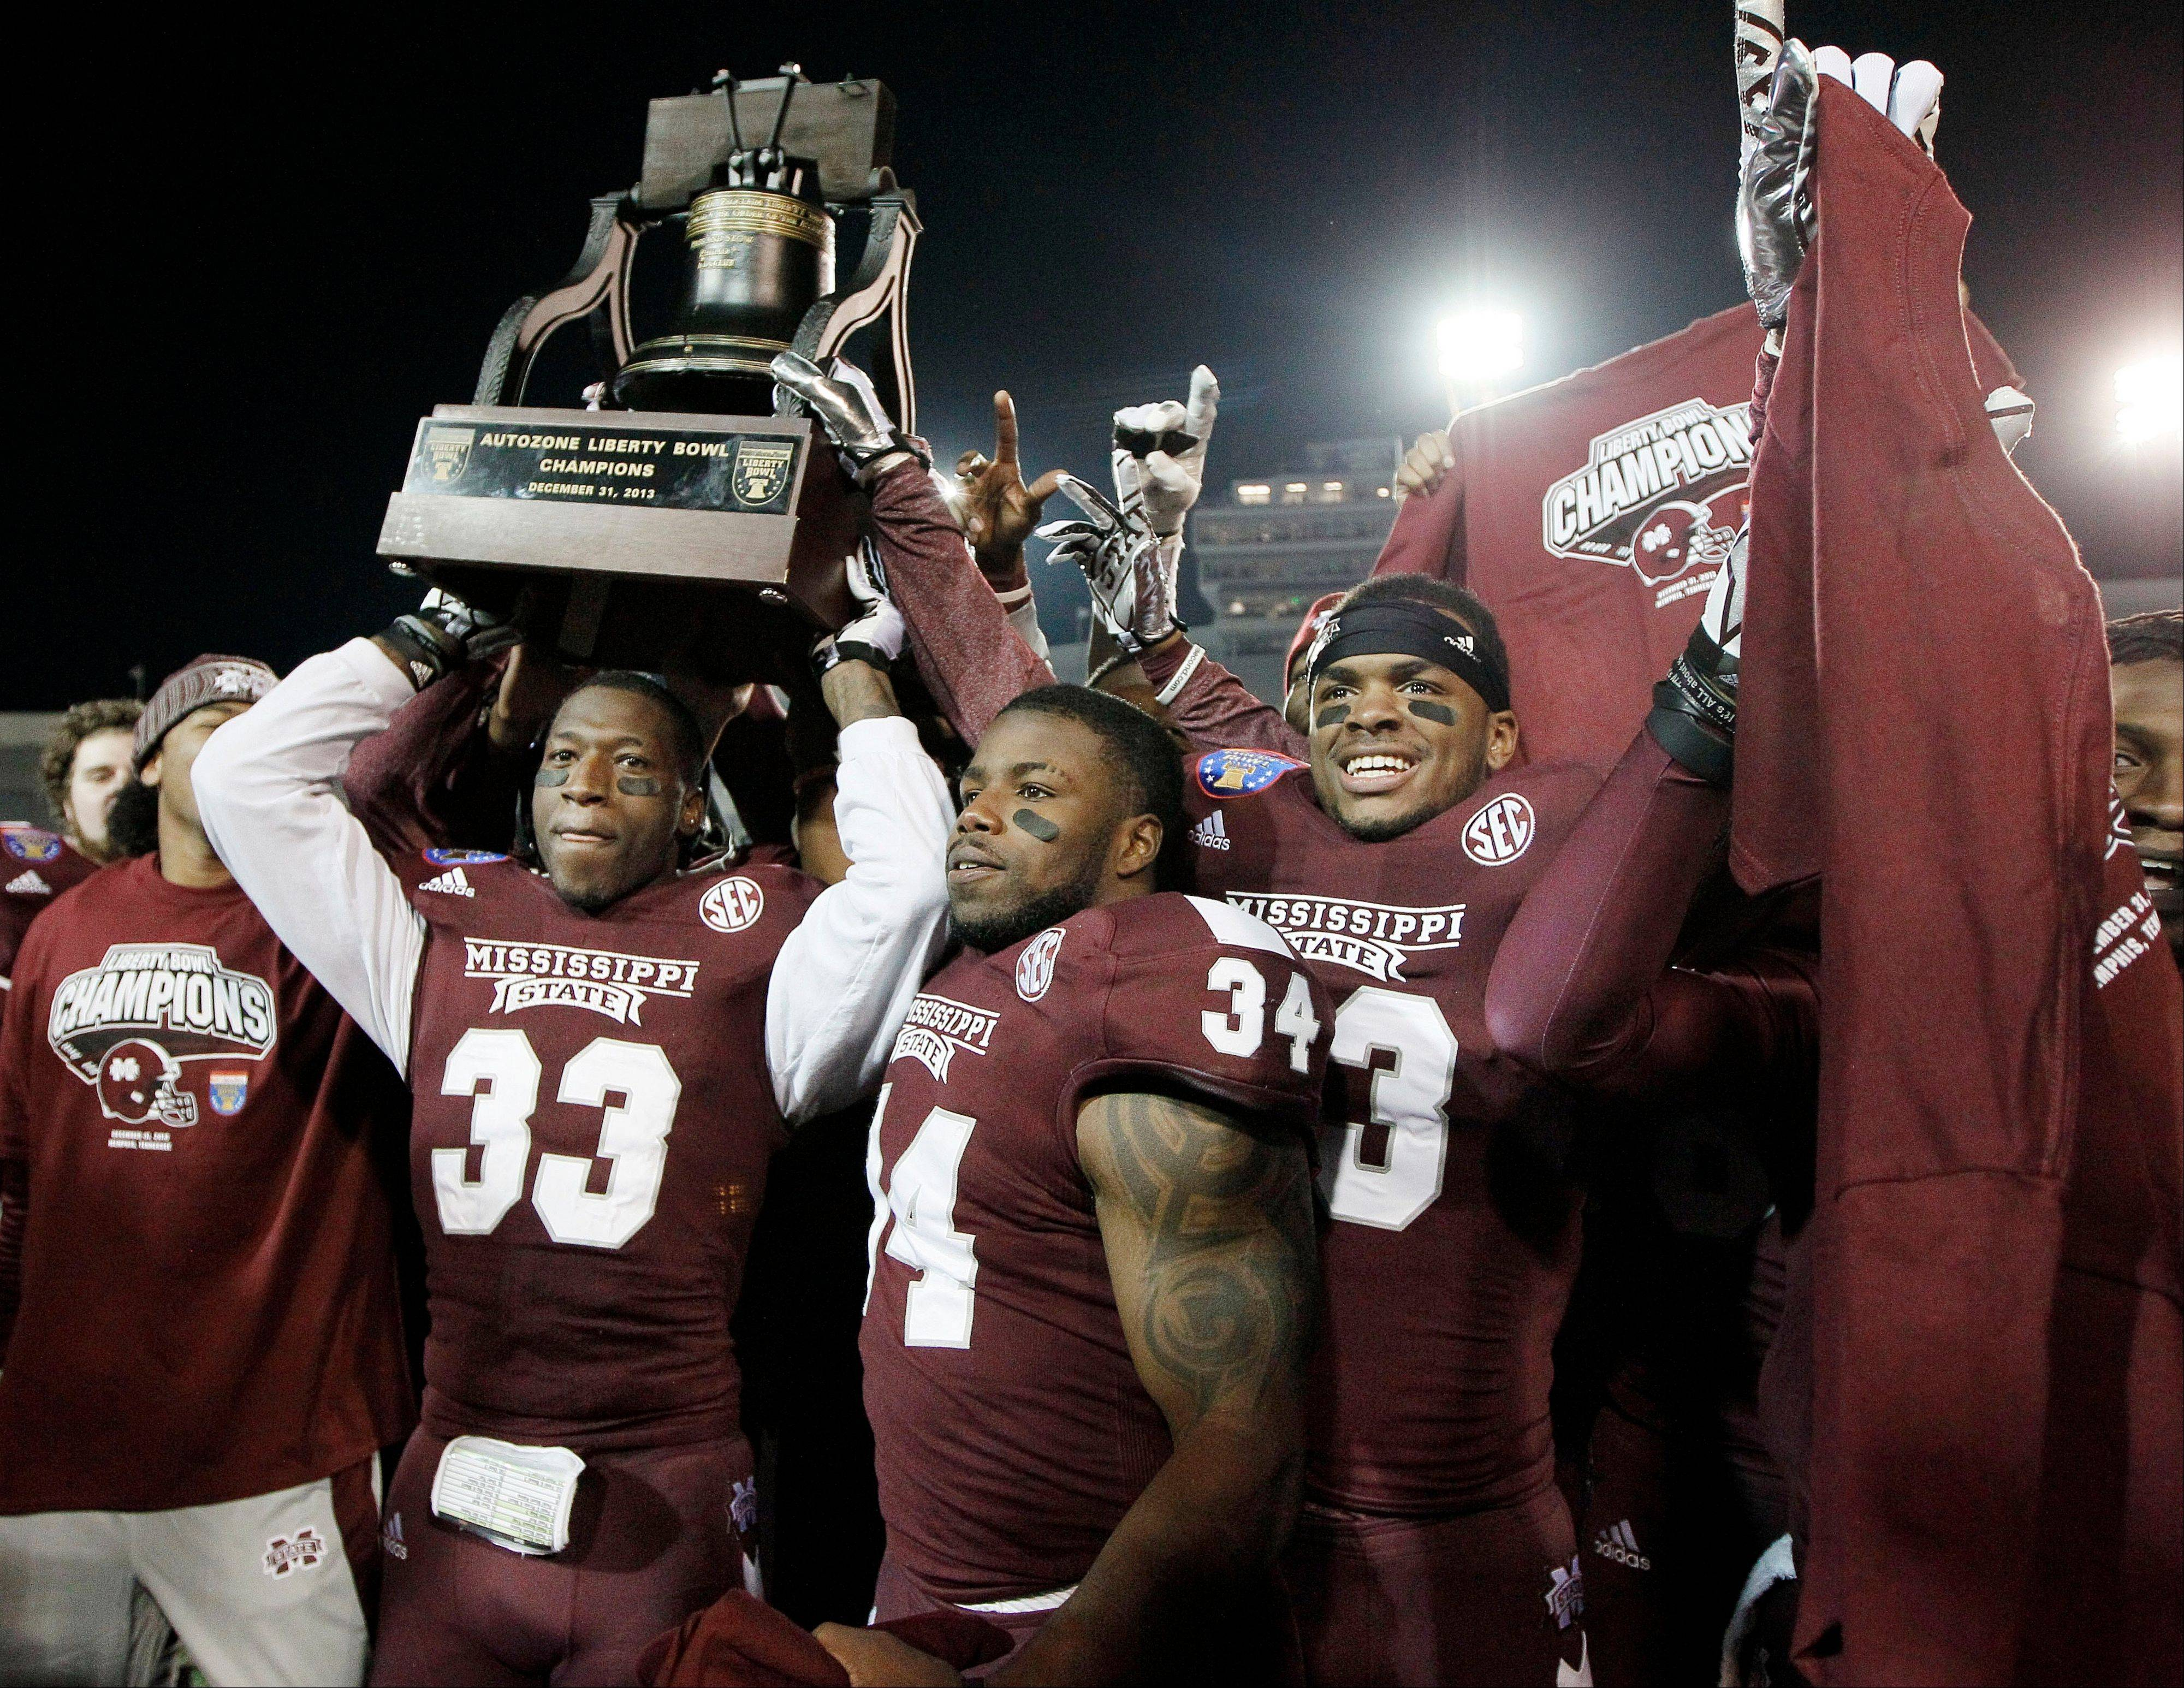 Mississippi State players Kivon Coman, from left, Josh Robinson and Michael Hodges celebrate with the trophy after beating Rice in the Liberty Bowl on Tuesday in Memphis, Tenn.